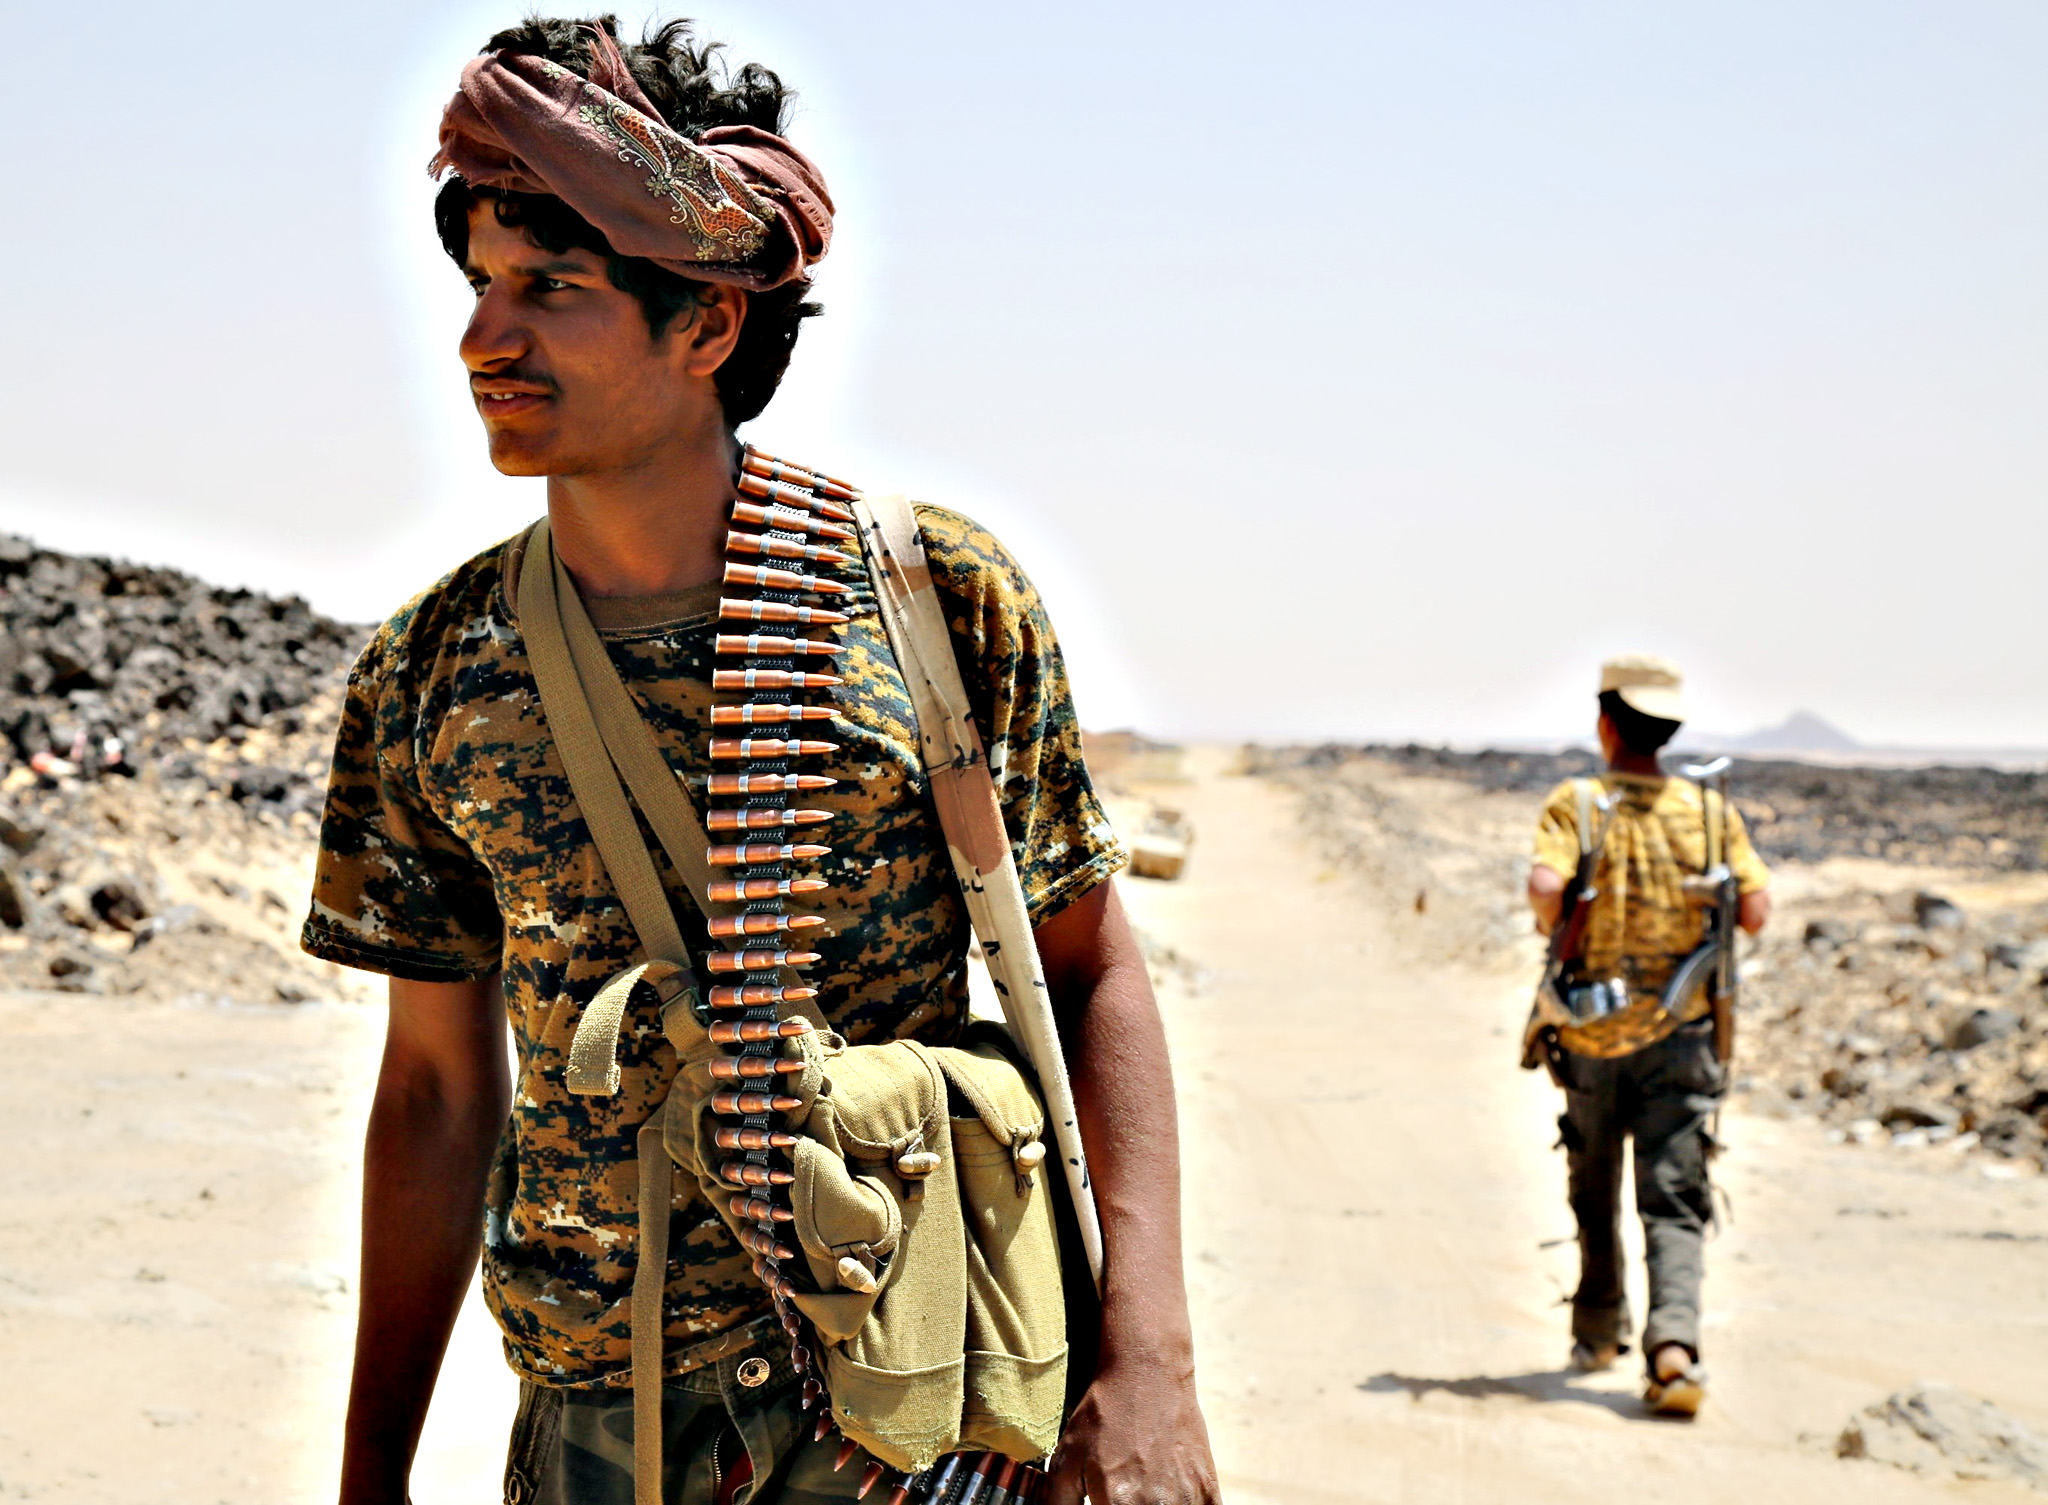 An armed Yemeni man from the Popular Resistance Committees, supporting forces loyal to Yemen's Saudi-backed fugitive President Abedrabbo Mansour Hadi, monitors the area in Marib province, east of the capital, Sanaa, on September 14, 2015. Hadi loyalists launched the largest and fiercest offensive since operations began in Marib province that is mostly controlled by fighters and armed tribes allied to Hadi, but the rebels and renegade troops loyal to ousted president Ali Abdullah Saleh still hold parts of the province